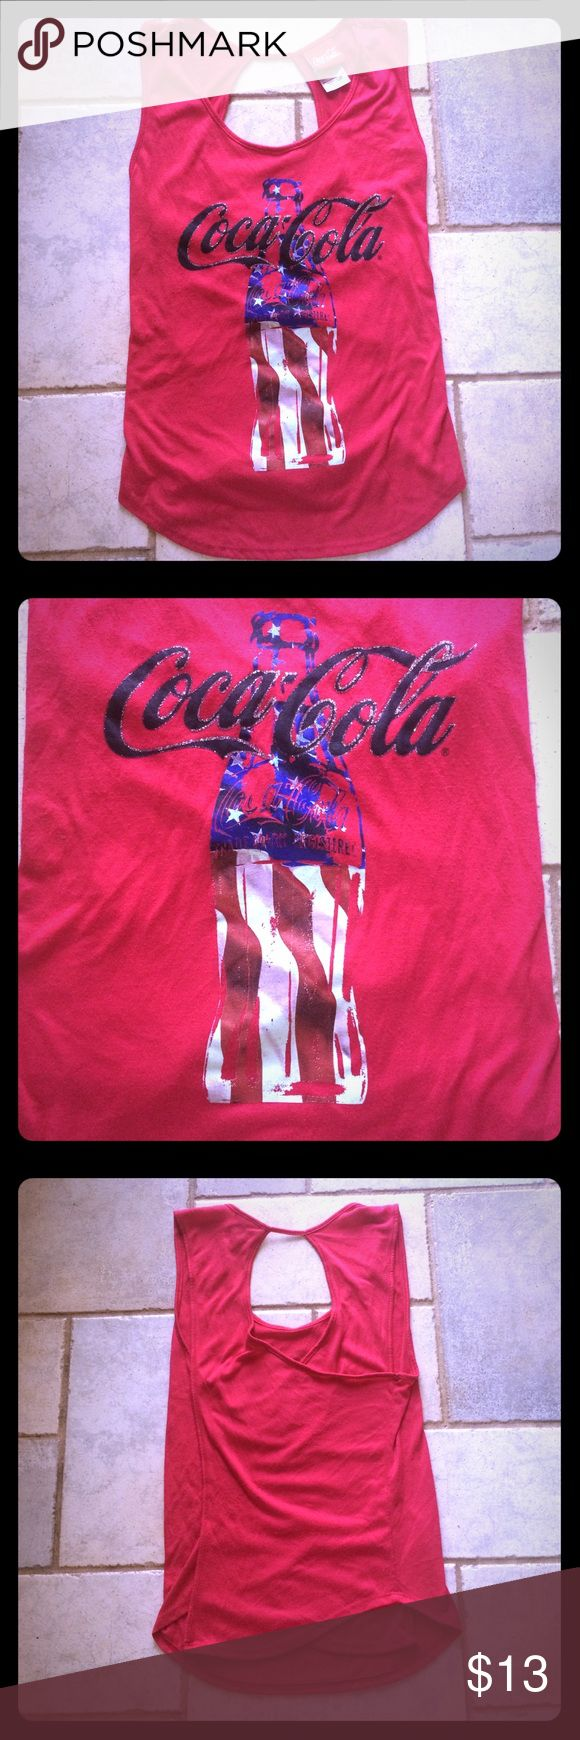 Coca Cola 4th of July Tank Top with open wrap back Coca Cola brand tank top in a 4th of July Theme- Red with a Coke Bottle designed with the American Flag. Size Large in Juniors, 11-13. In gently used condition although it does have a tiny bit of wash wear. No stains or rips. Measurements available upon request 🤗🤗 Coca Cola Tops Tank Tops